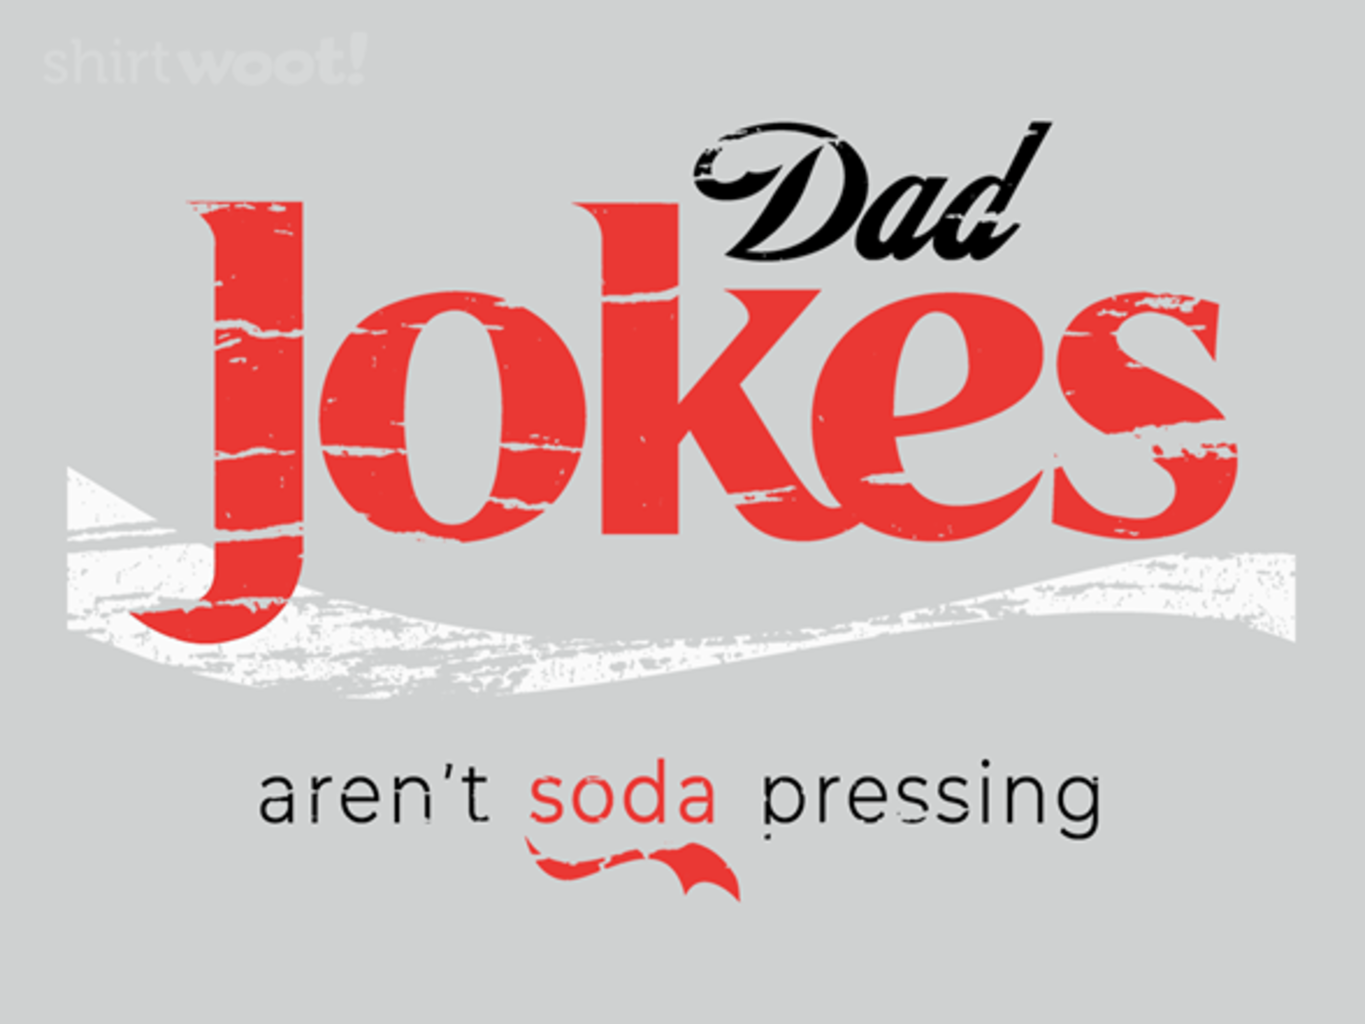 Woot!: Joke-a-Cola